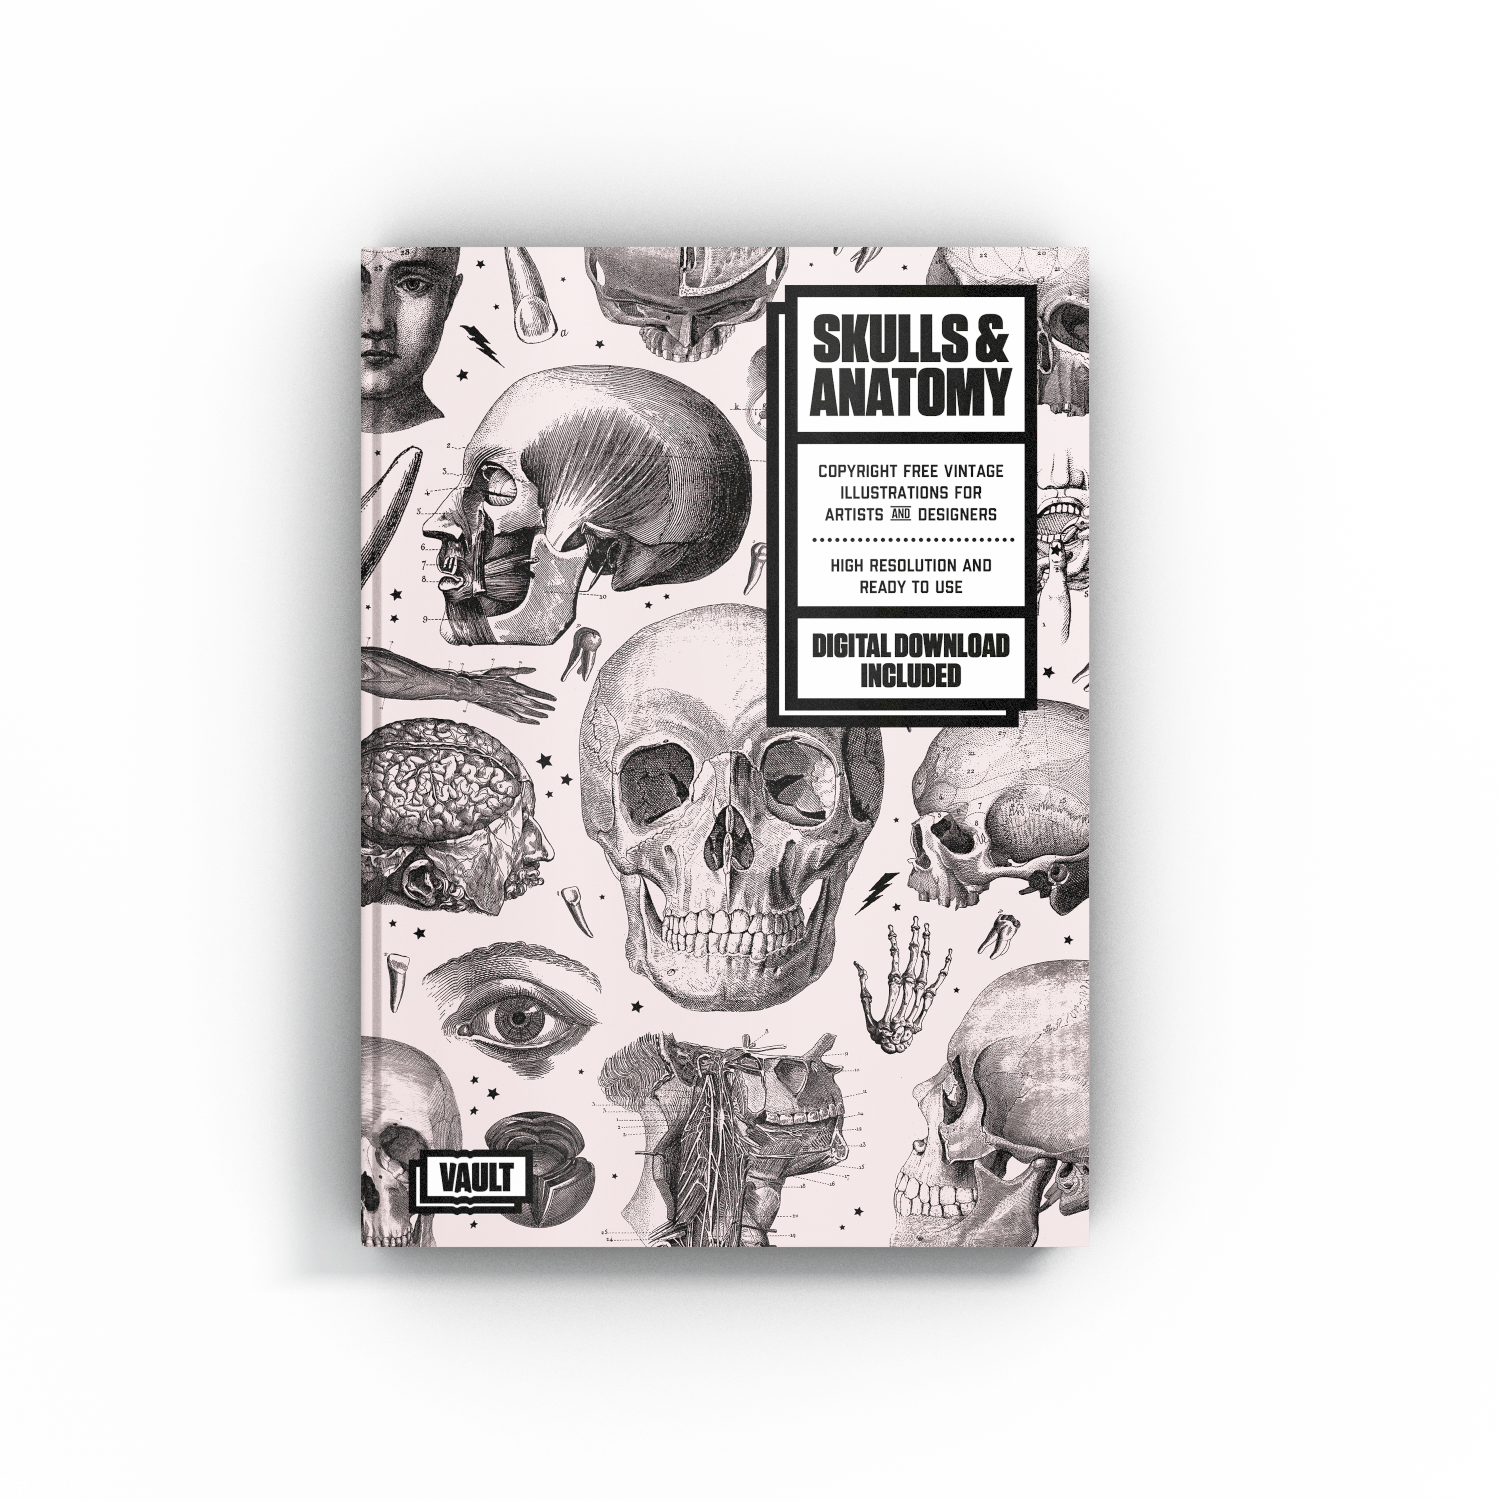 Navigation - We've made navigating this collection easy with the Skulls & Anatomy reference eBook. Each image comes with a alphanumeric code that will align with our categorised folders in your download.